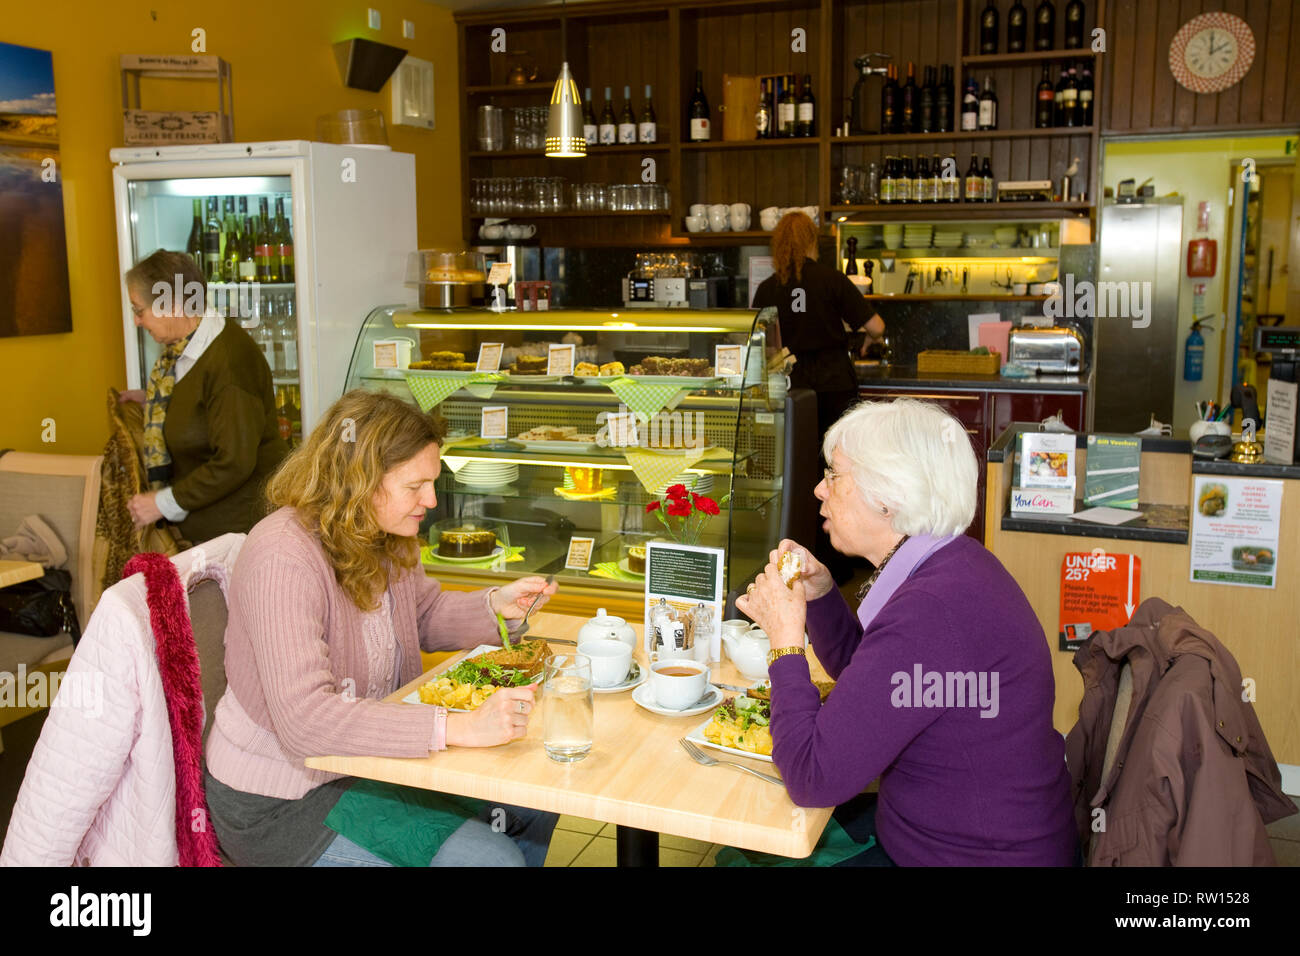 Cafe, restaurant, shop, Chale Stores and Deli, Chale, Isle of Wight, England, UK - Stock Image